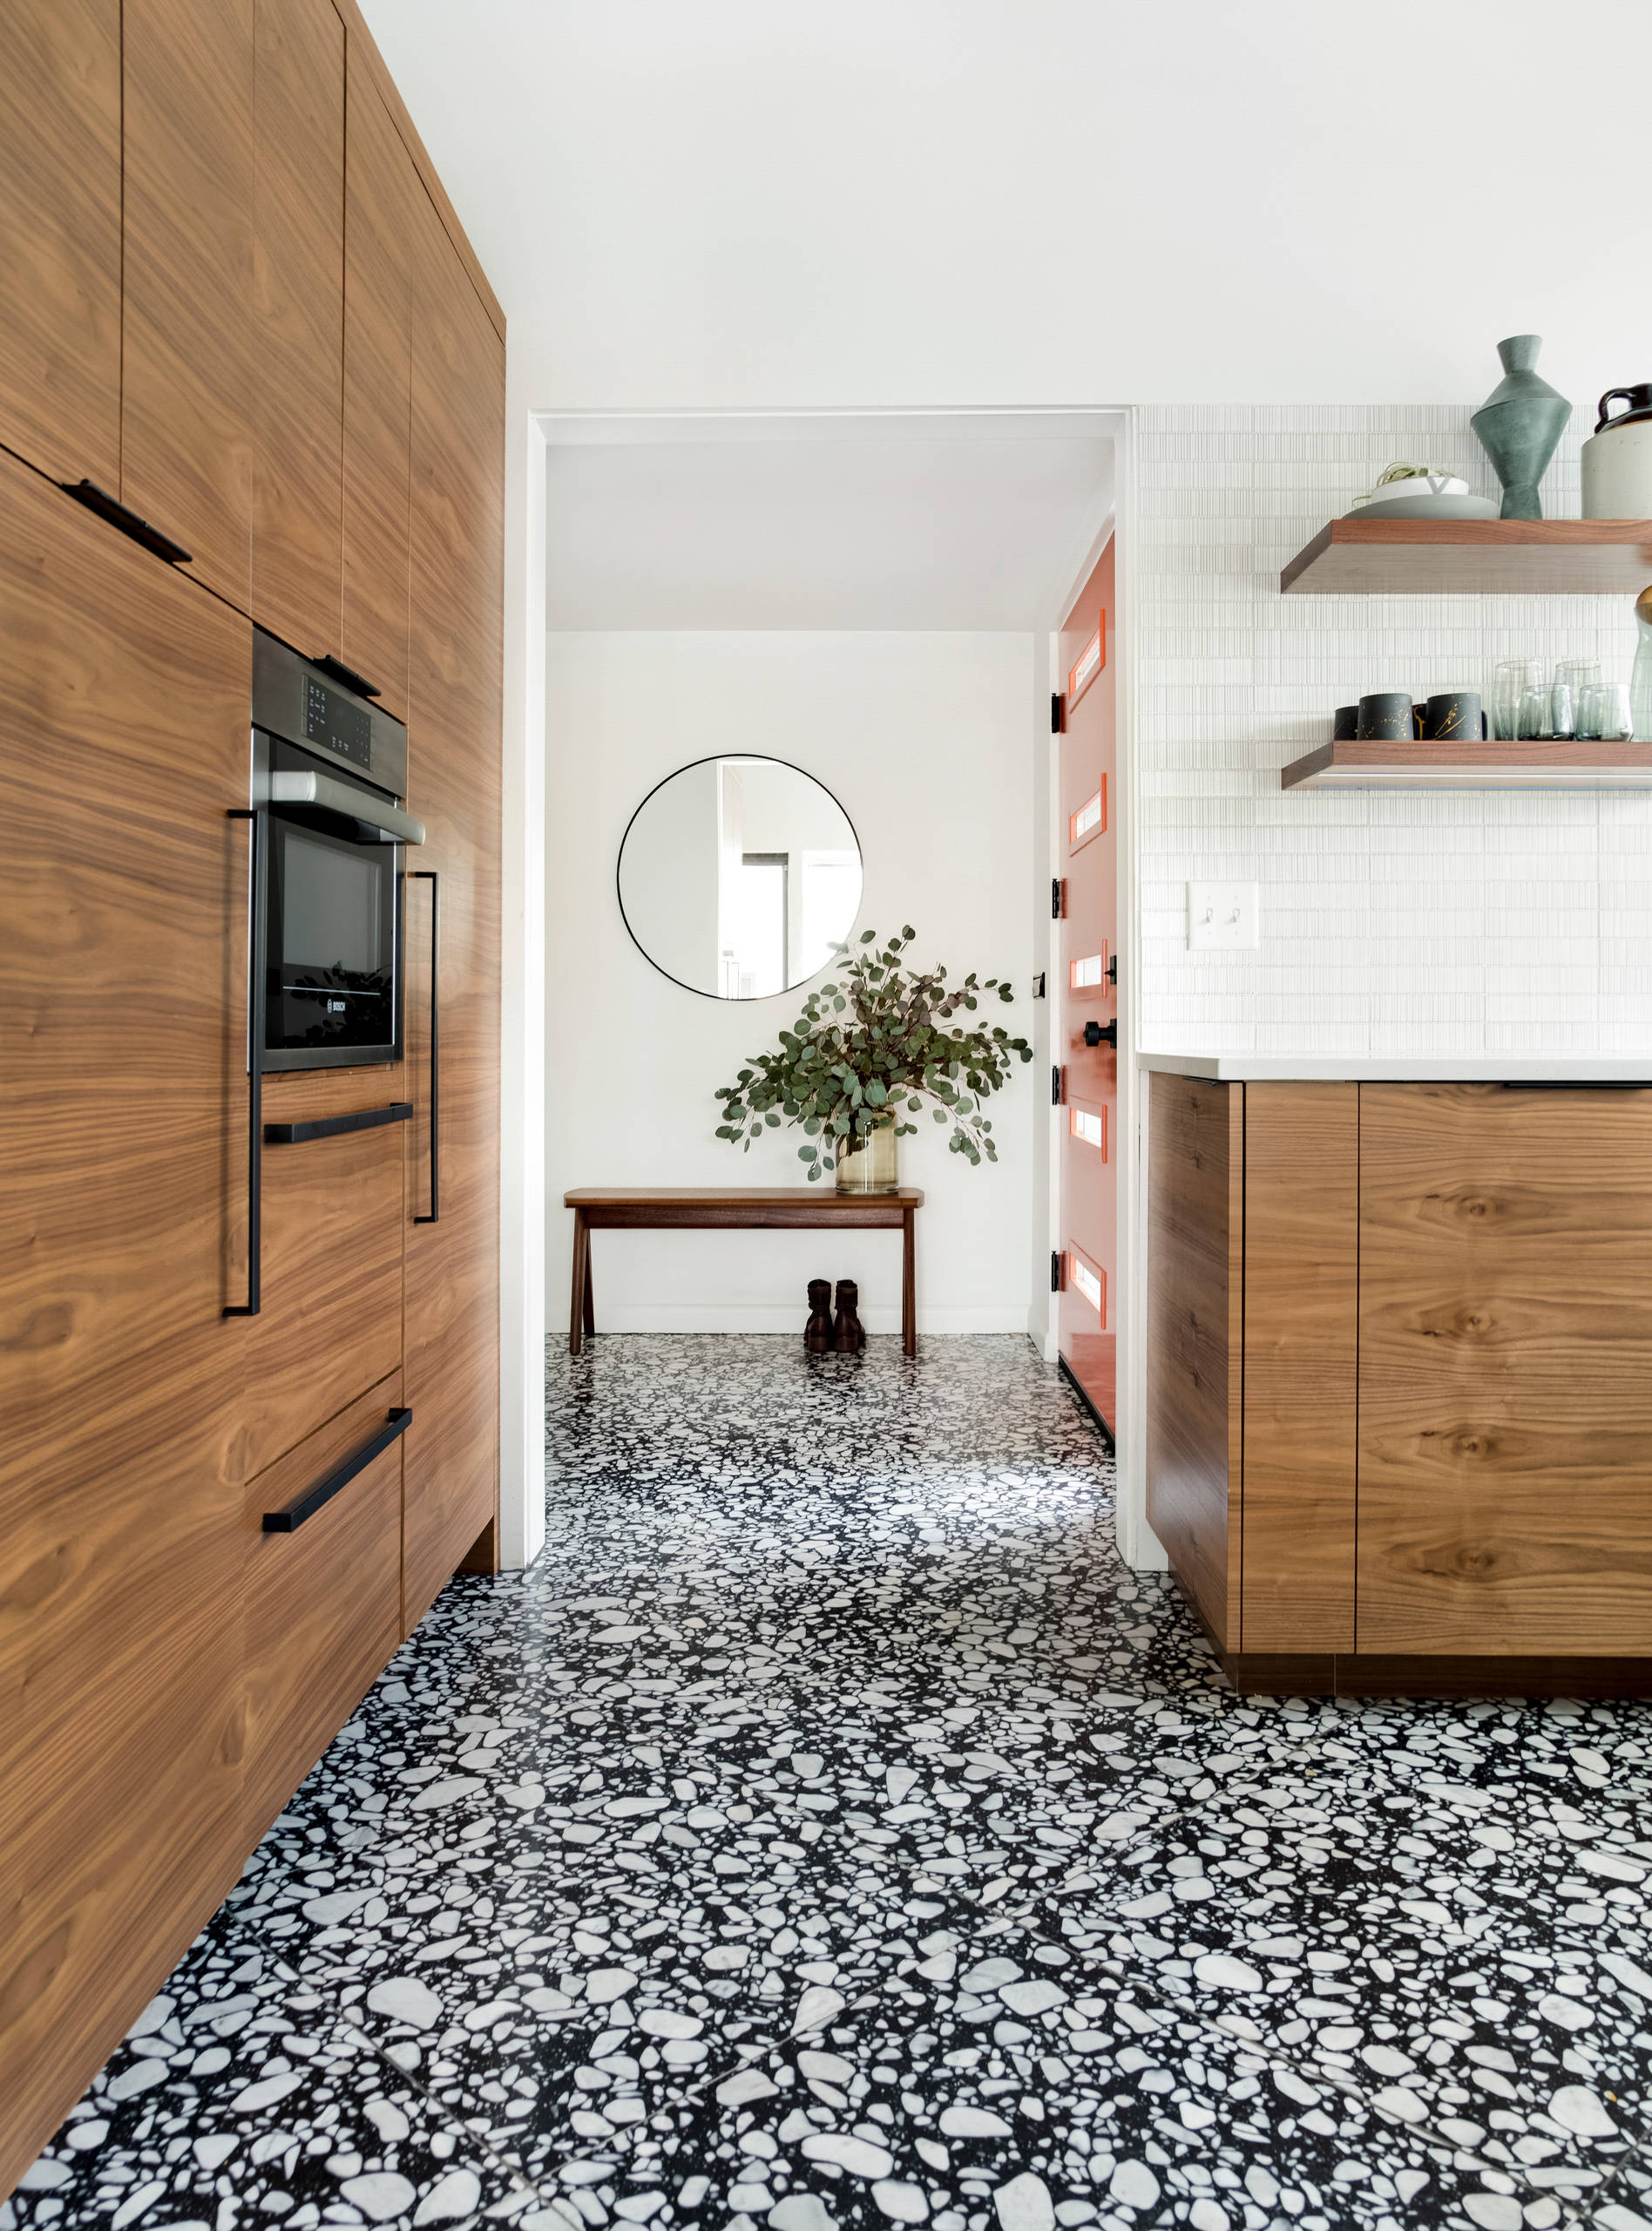 5 Beautiful Terrazzo Floor Kitchen Pictures & Ideas - November